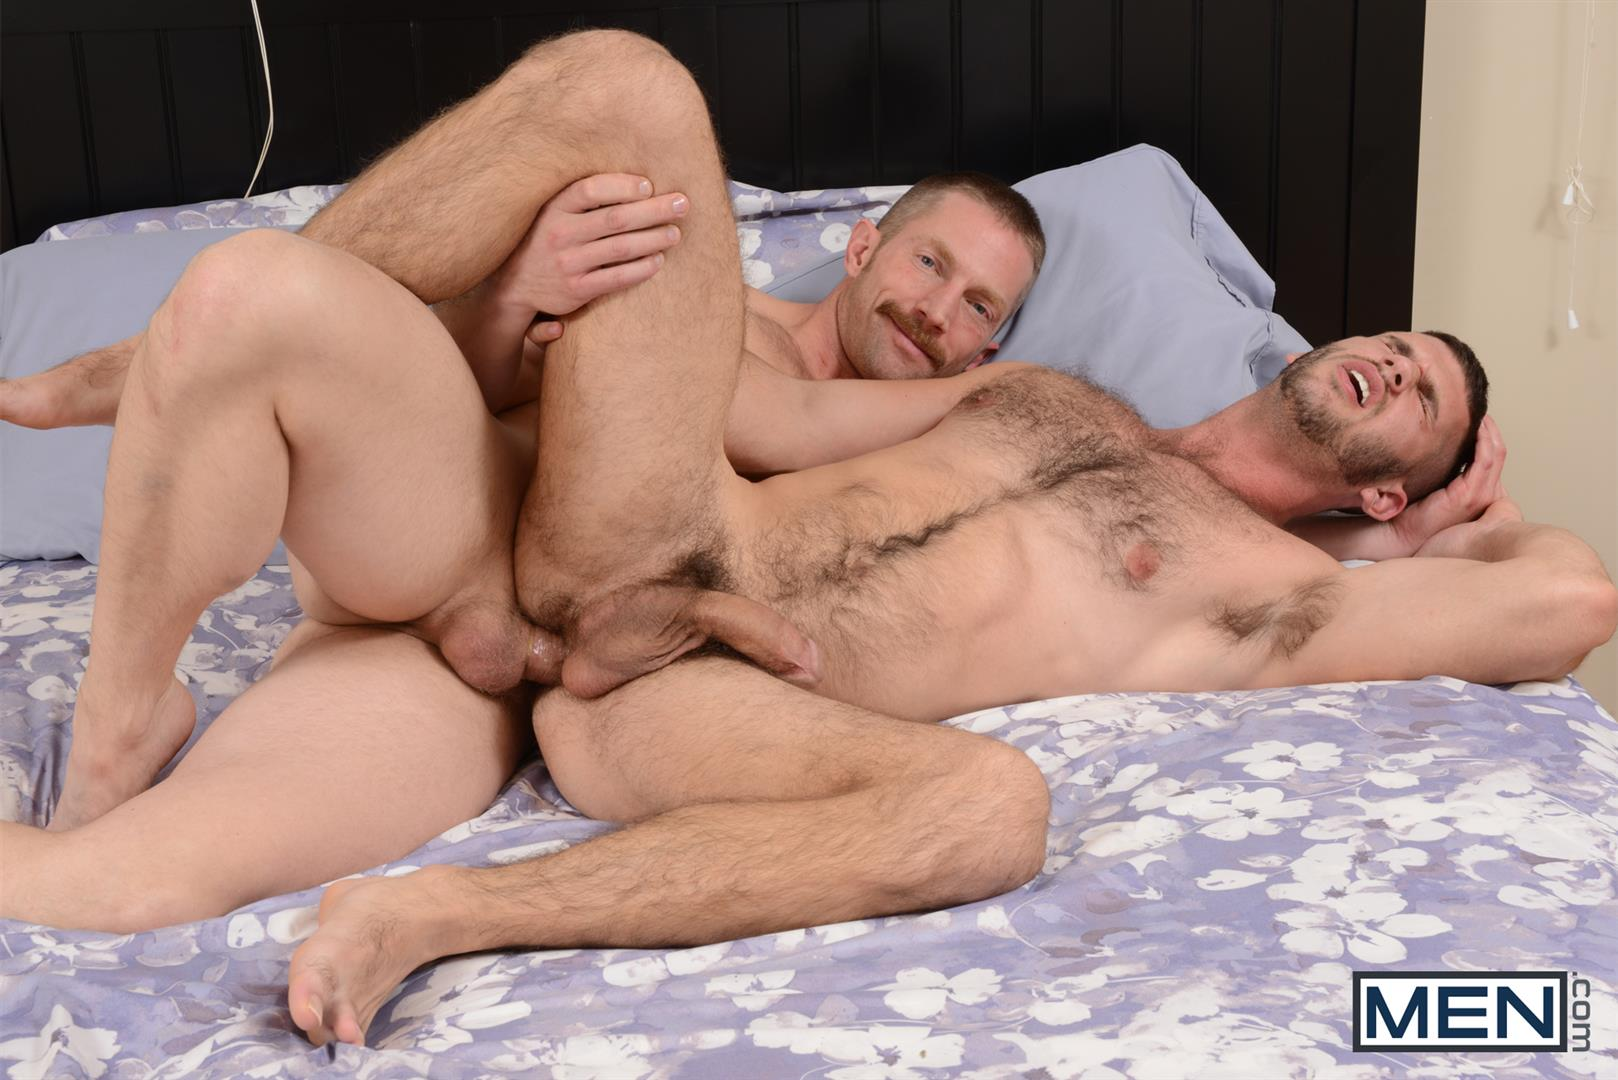 Men Drill My Hole Adam Herst and Jimmy Fanz Hairy Muscle Jock Getting Fucked Amateur Gay Porn 11 Hairy Muscle Hunk Jimmy Fanz Gets Fucked Hard By Adam Herst